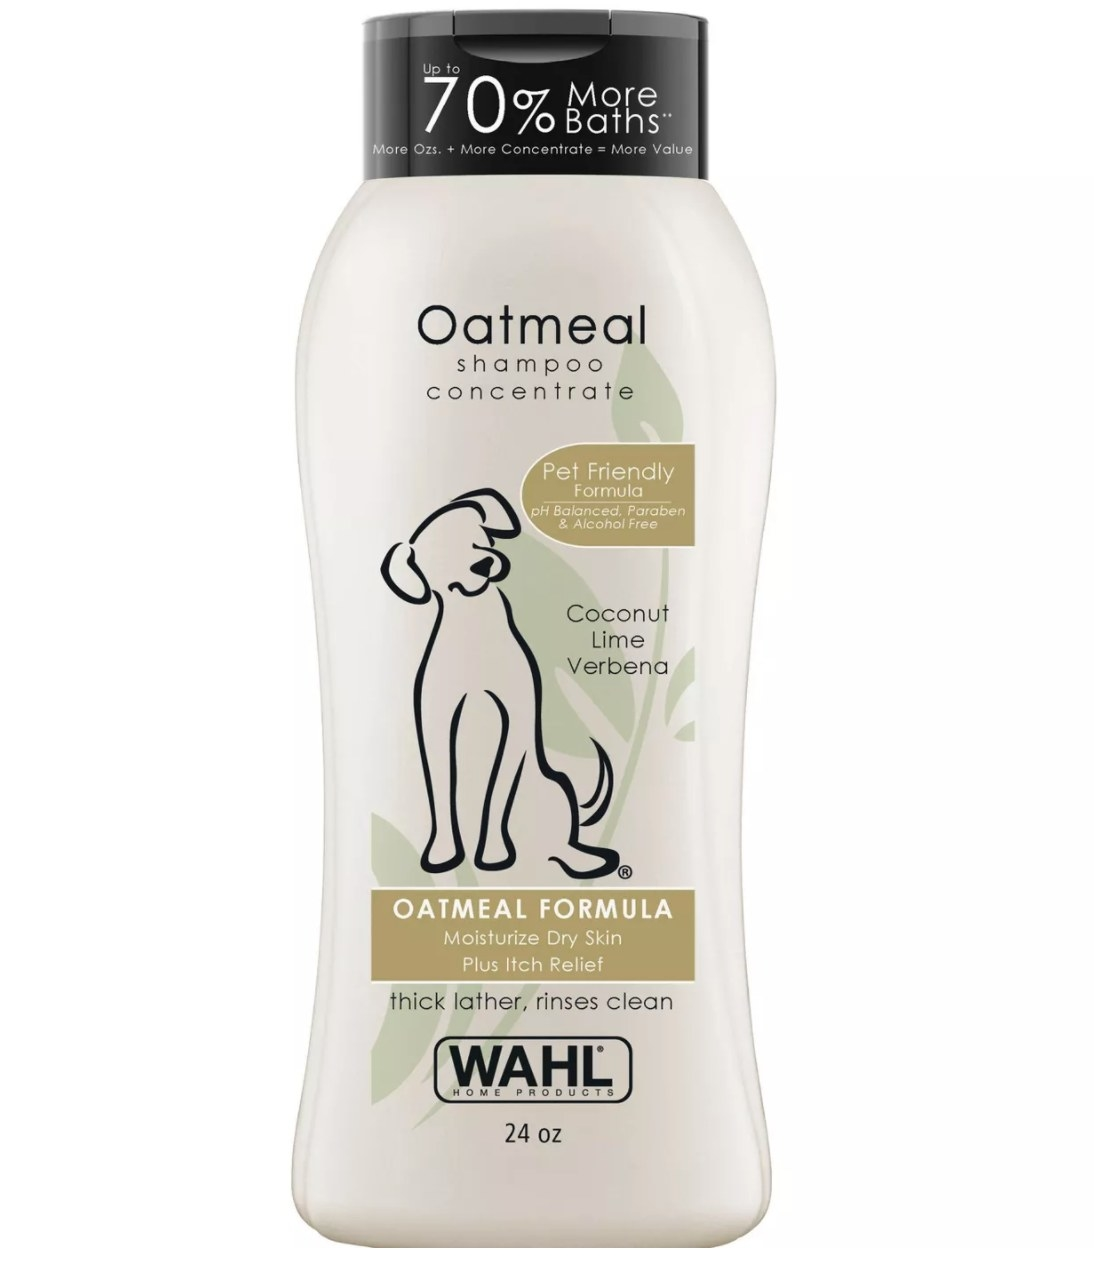 A bottle of the coconut-scented oatmeal dog shampoo